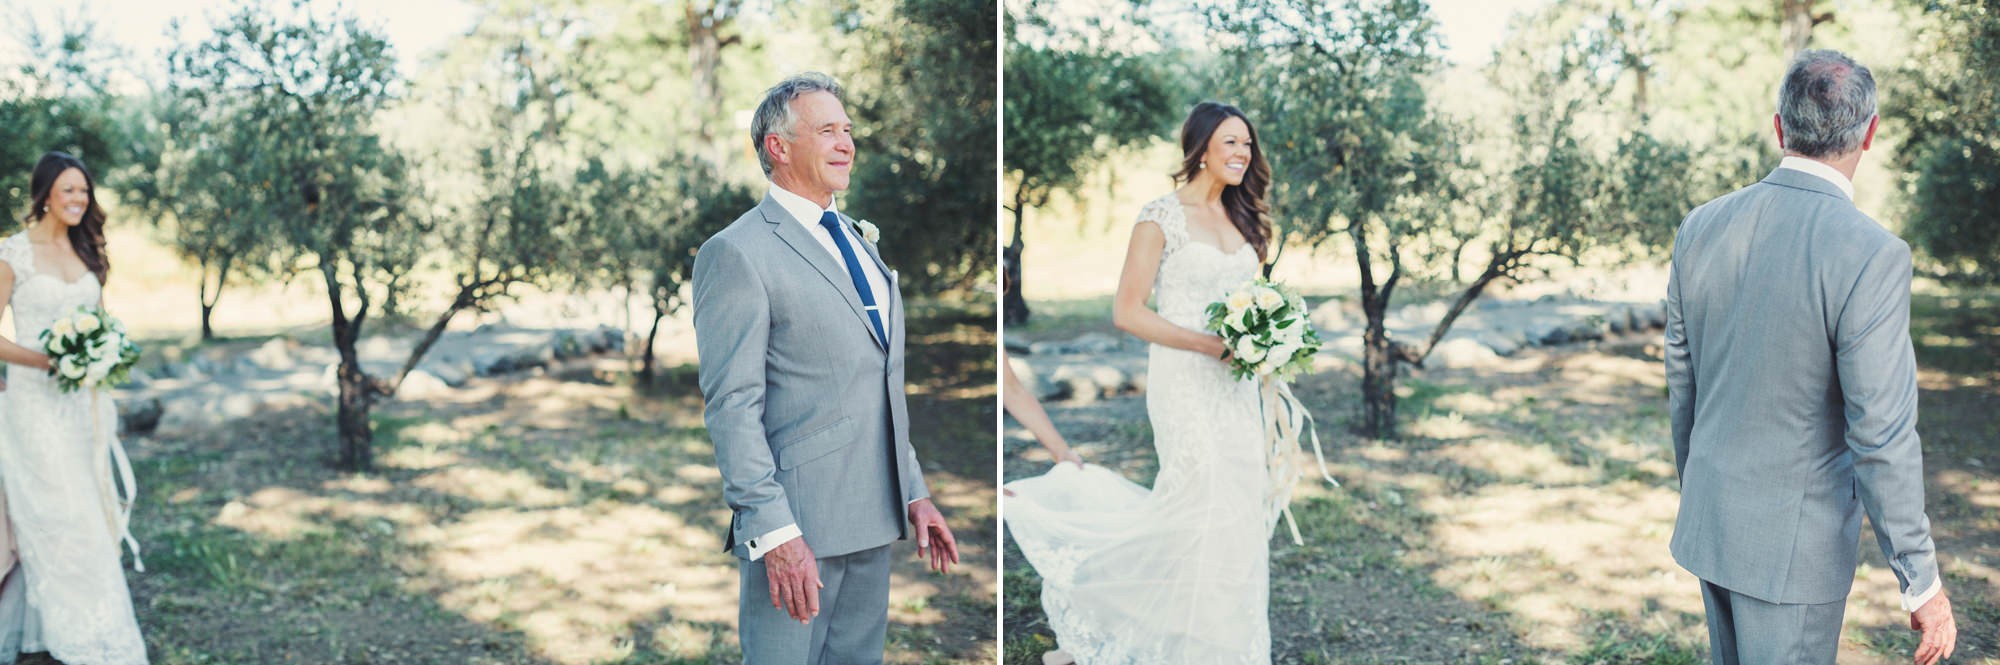 Wedding in Campovida @Anne-Claire Brun 33